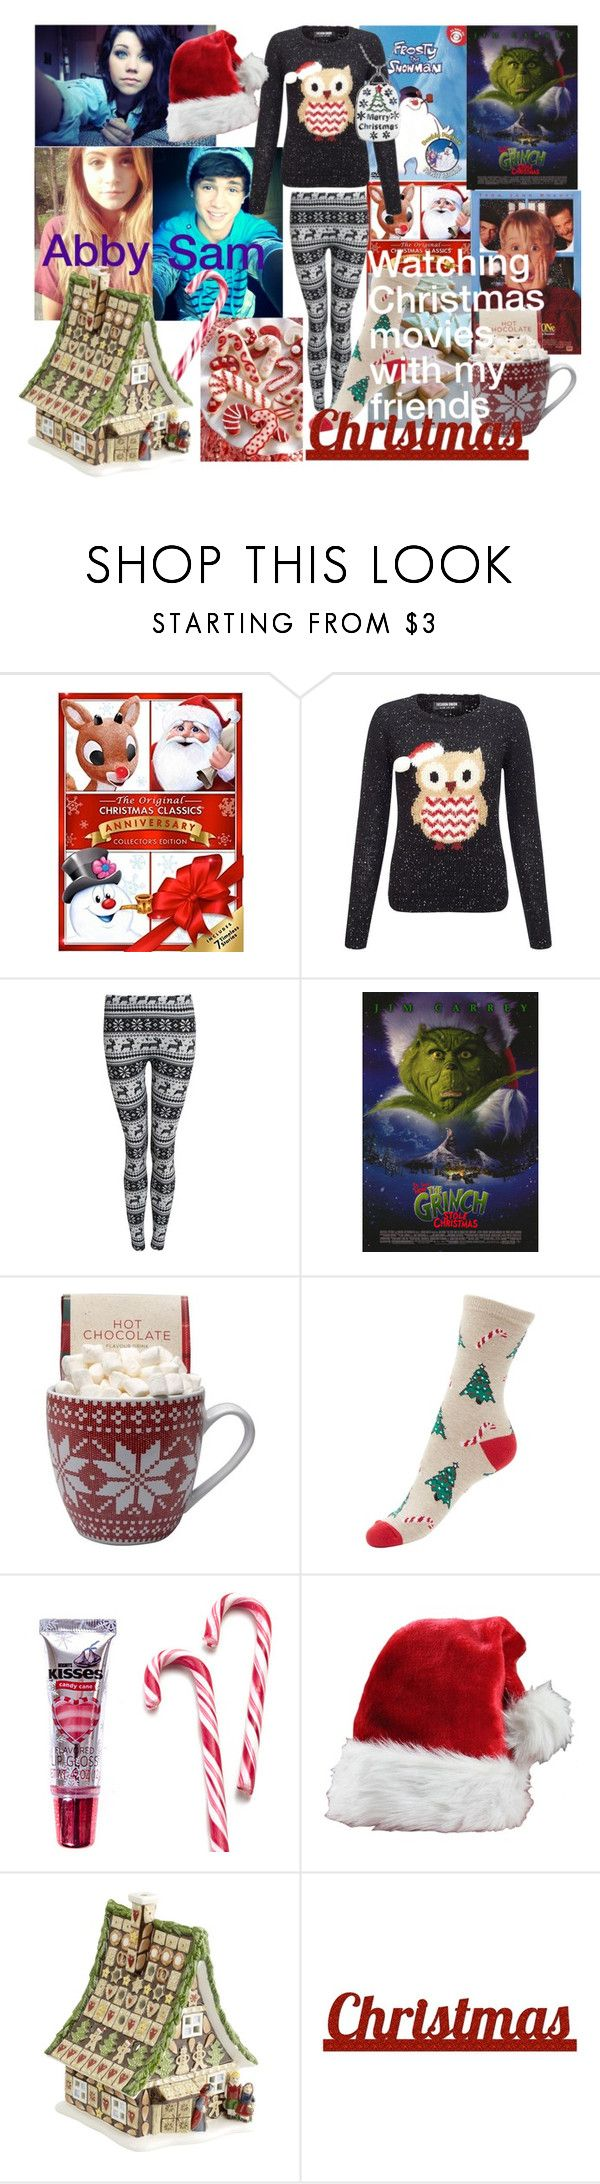 """""""Watching Christmas Movies Sam/Abby"""" by softballnumber4 ❤ liked on Polyvore featuring Lipsy, Pilot, Hershey's, Villeroy & Boch and Sixtrees"""